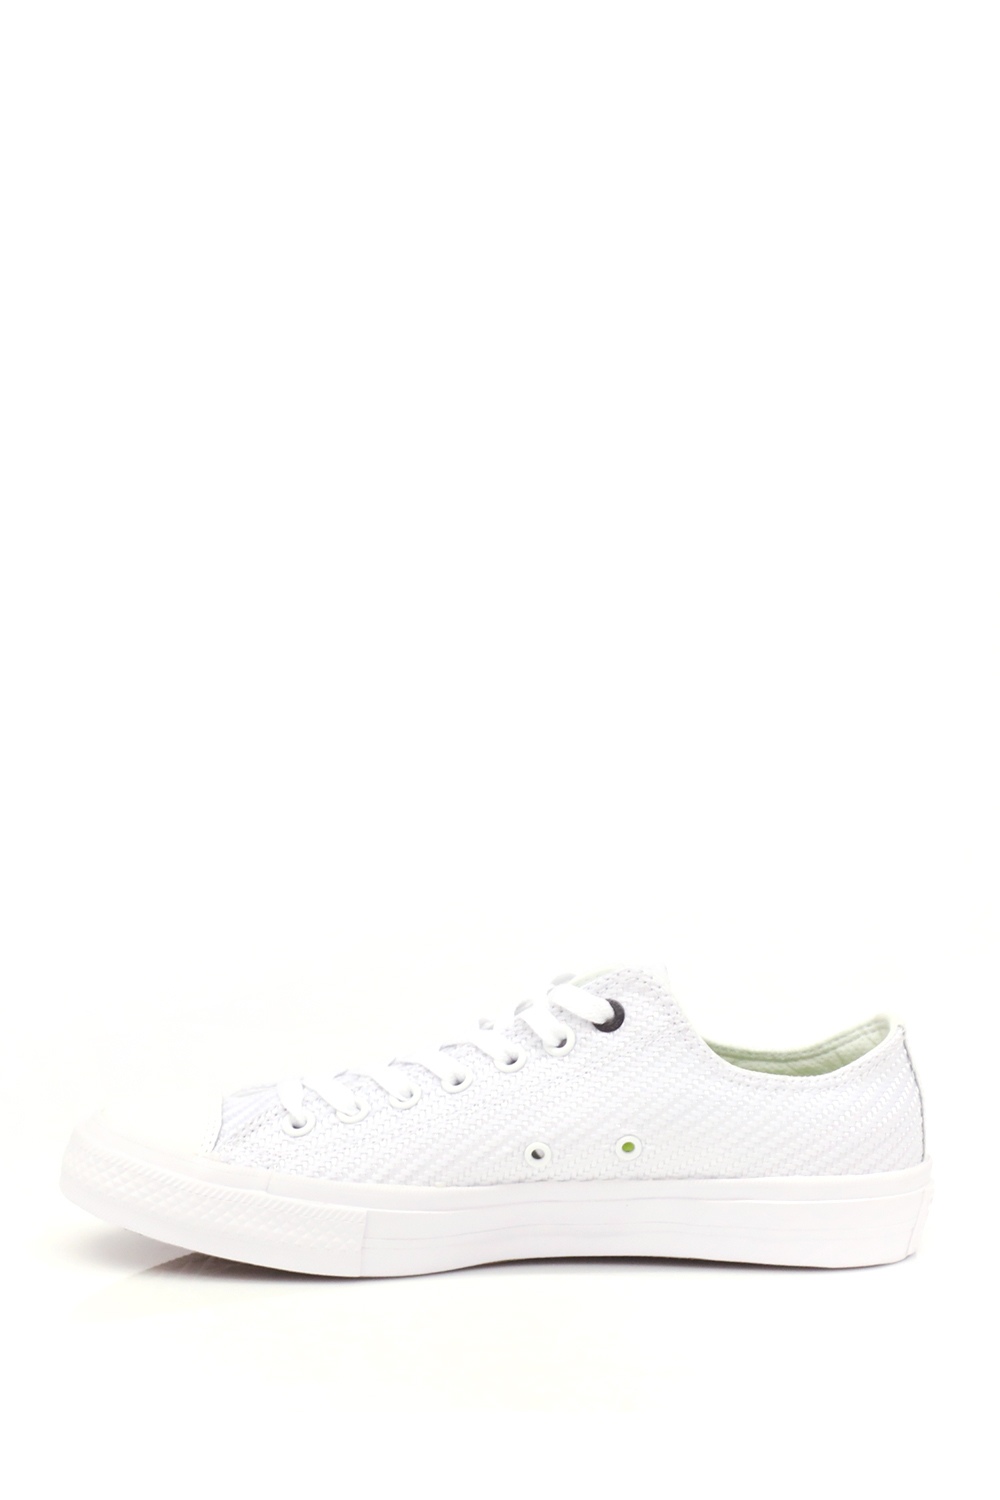 CONVERSE - Unisex Chuck Taylor All Star II Ox Λευκά